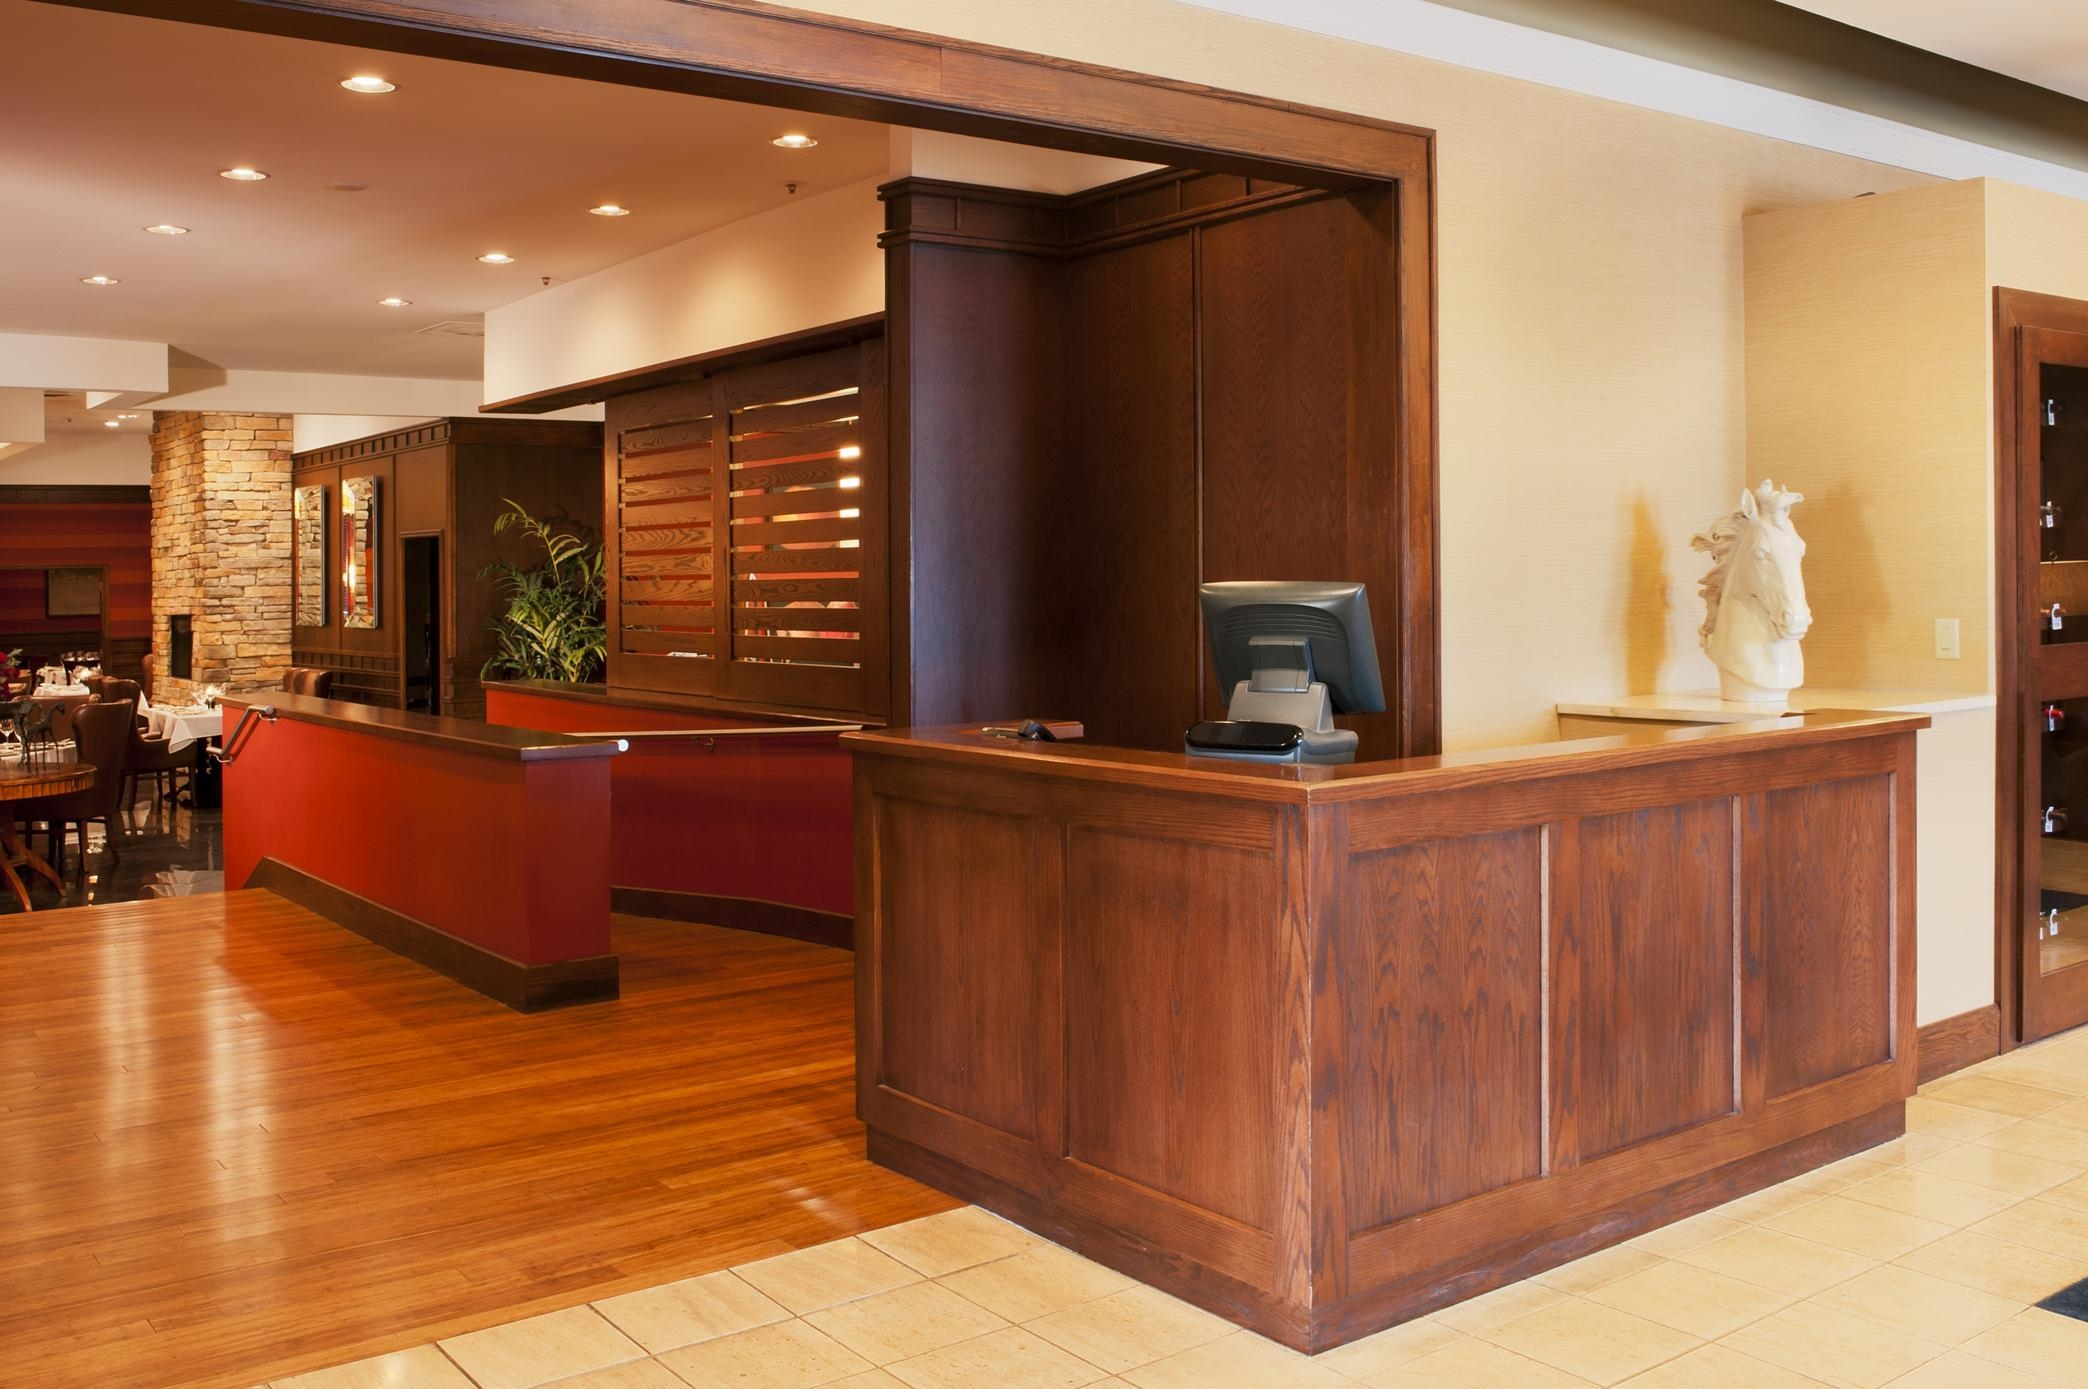 DoubleTree by Hilton Hotel Collinsville - St. Louis image 32